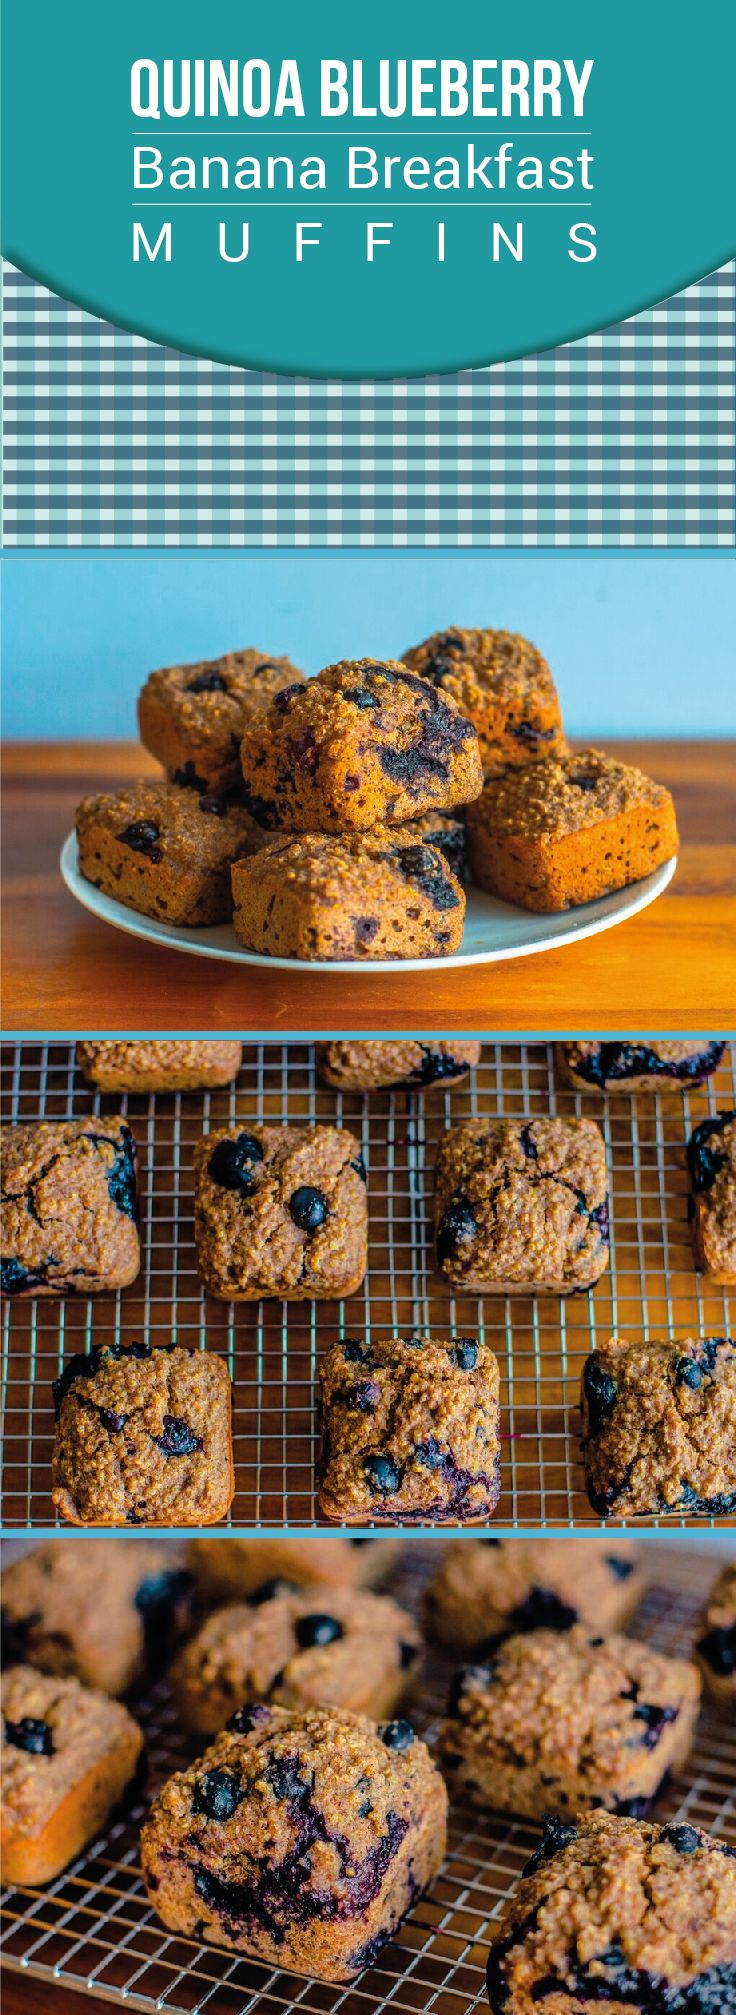 Quinoa breakfast muffins are one of my favorite go-to recipes to incorporate leftover quinoa. Very easy to customize for diabetics and just really, really good. #fitmencook #fitwomencook #healthy #breakfast #muffin